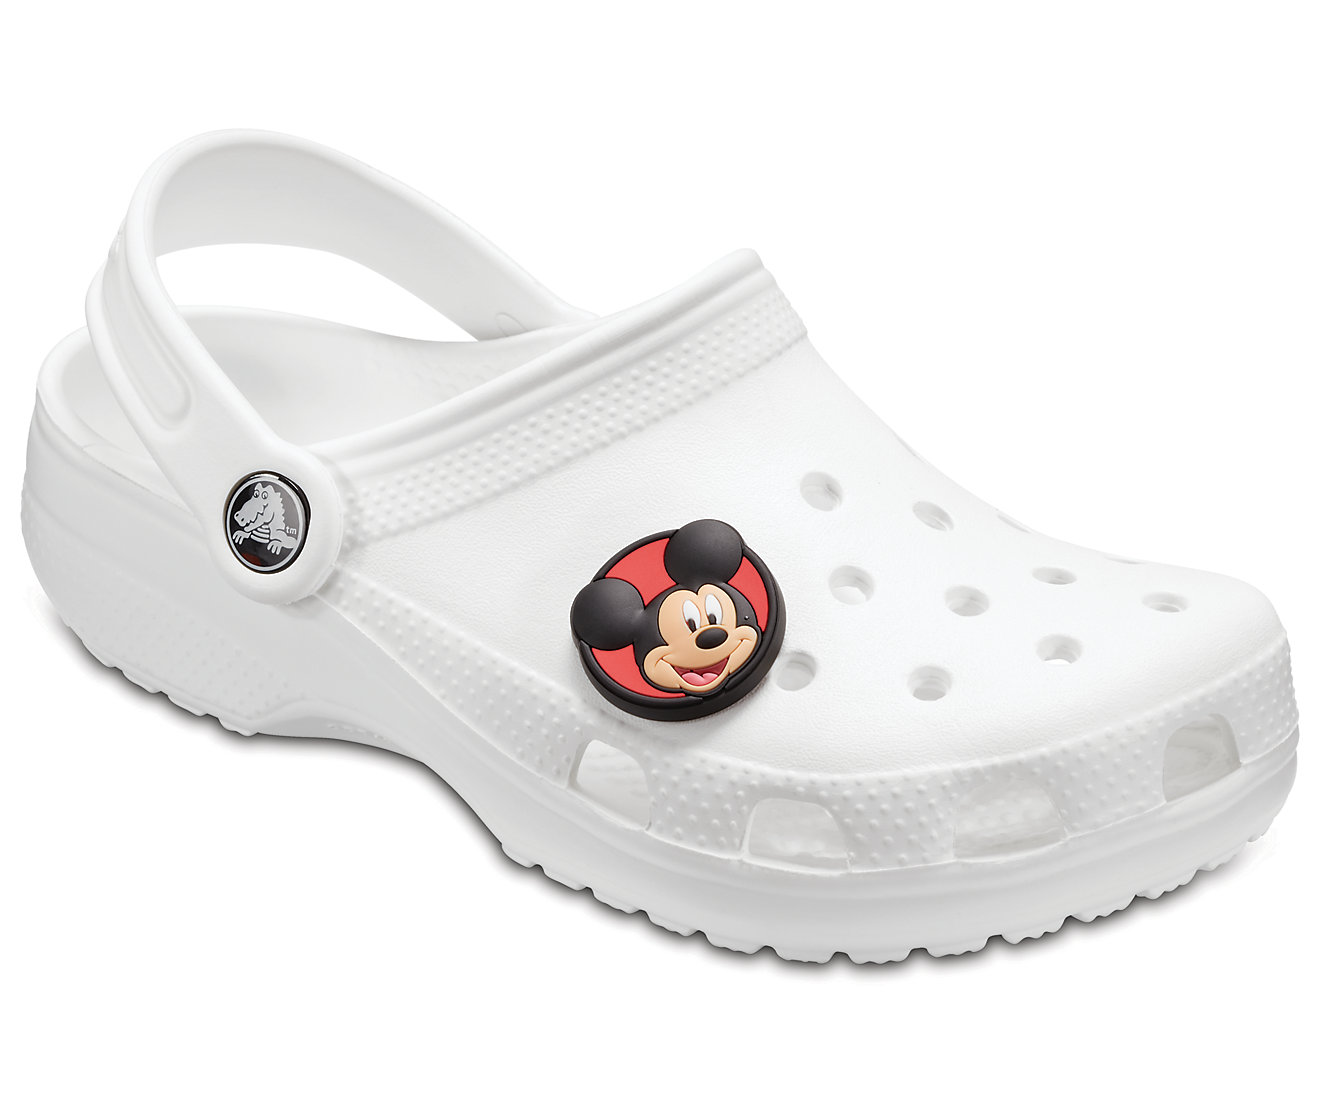 Crocs ozdoba do boty Jibbitz Mickey Mouse